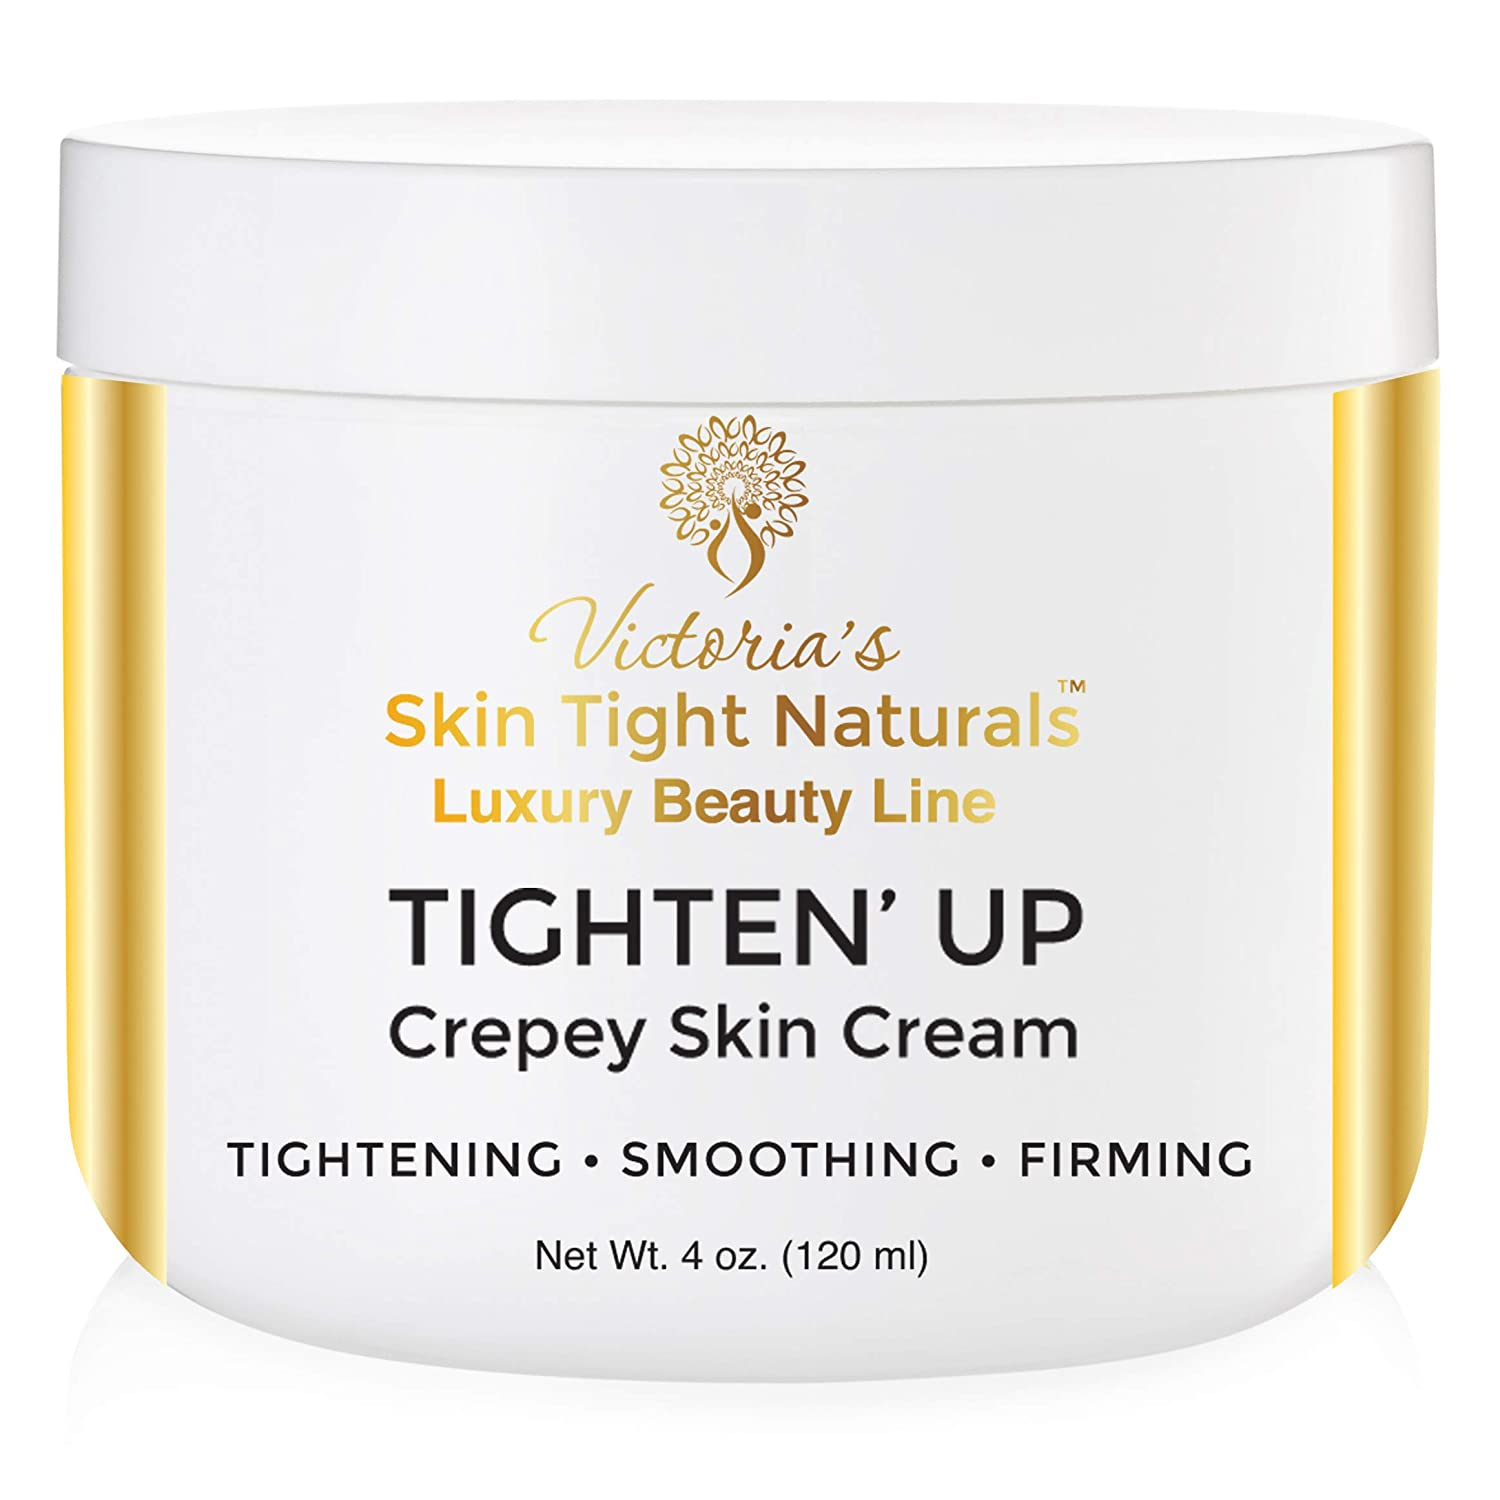 Tighten' Up Crepey Skin Total Body Moisturizing Cream